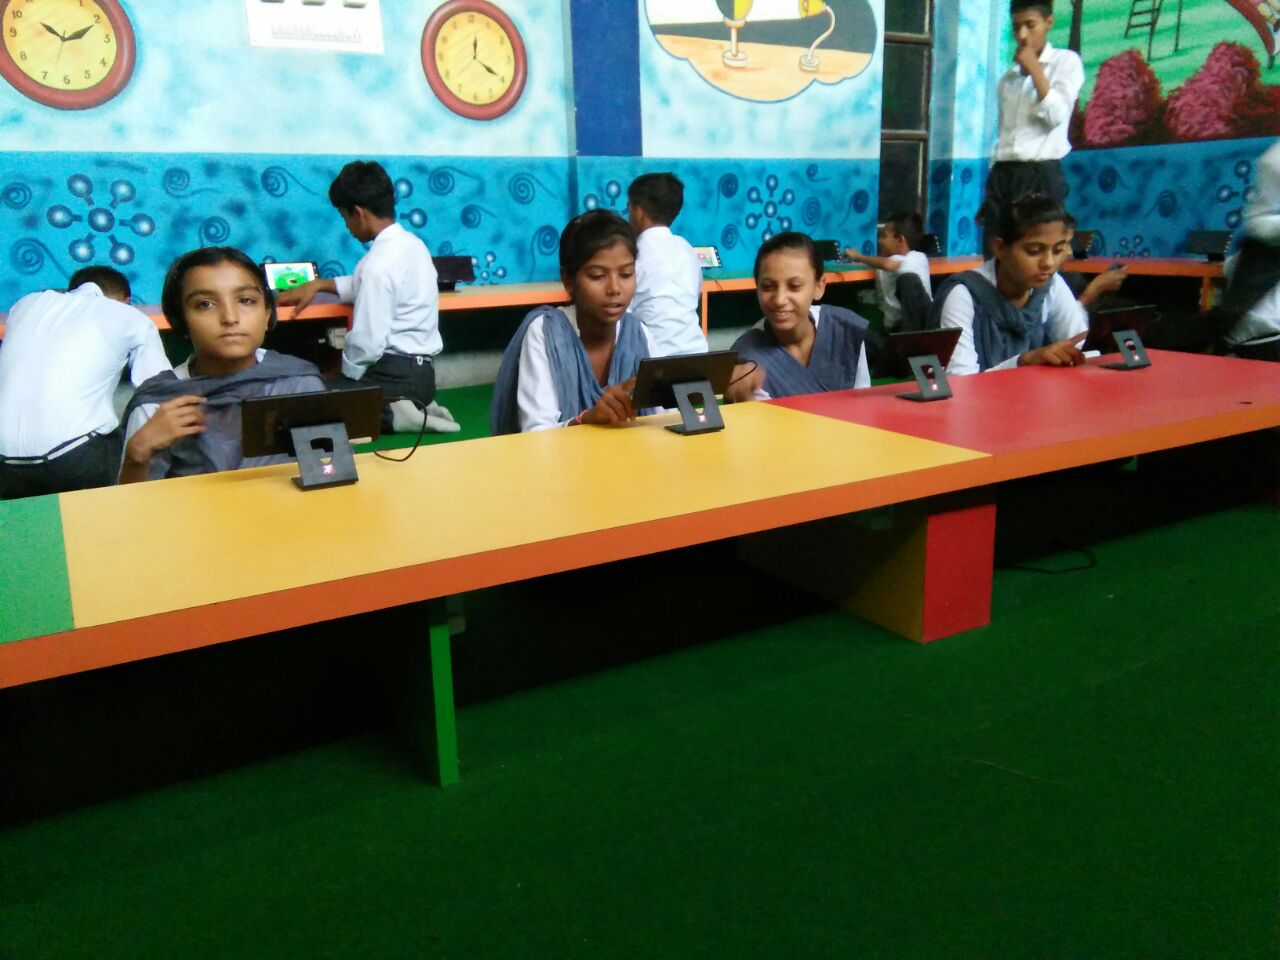 An Initiative to bridge the gap between differently-abled and abled children through Education in Sirsa, Haryana